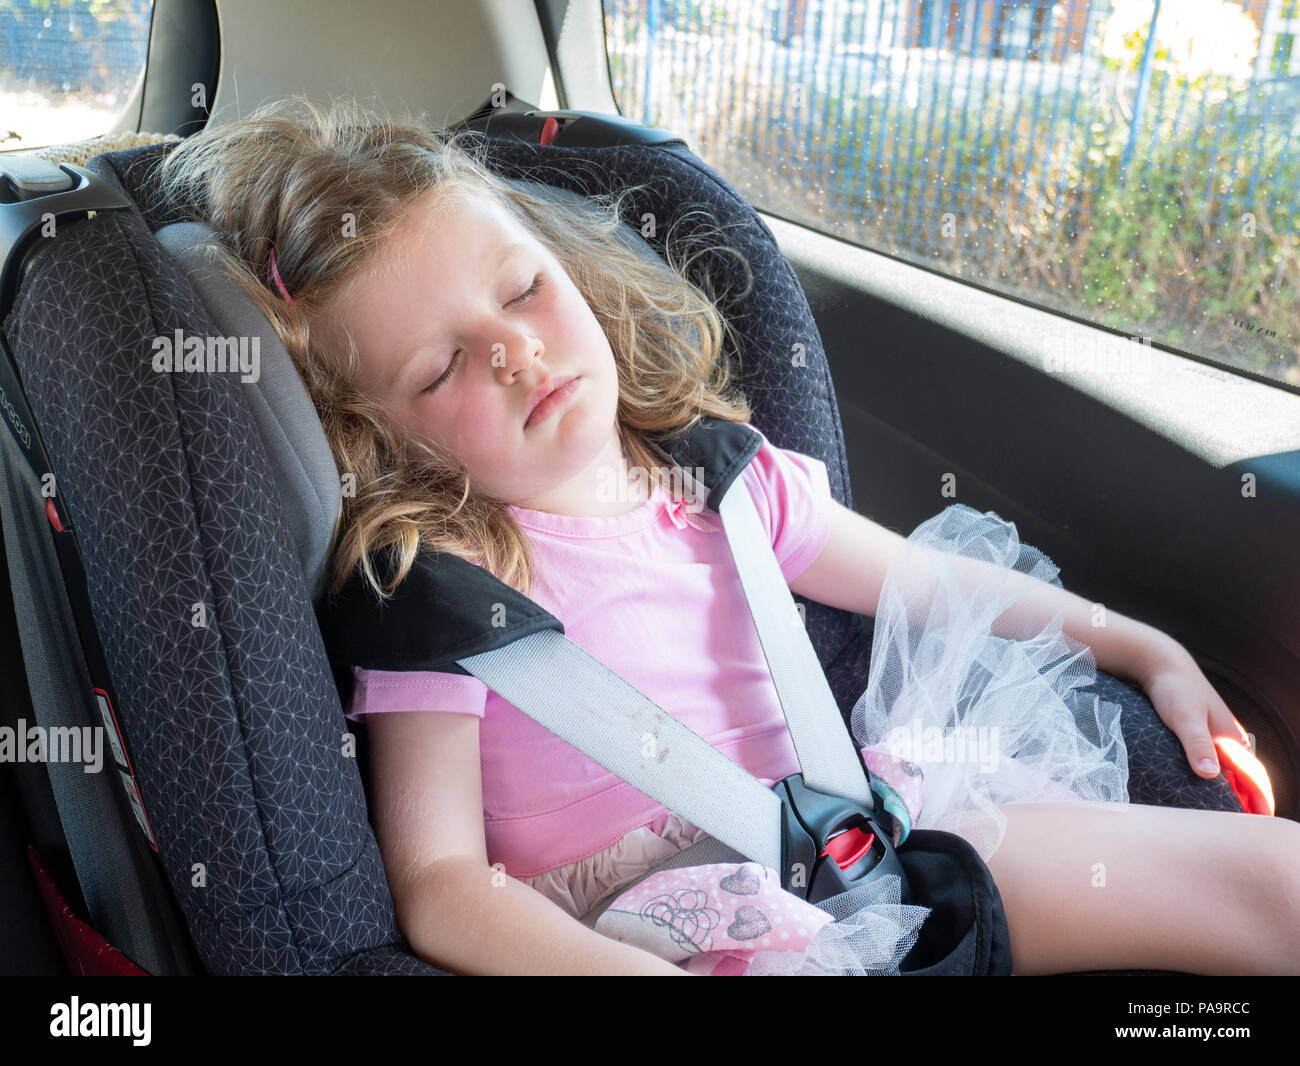 Three year old child sleeping in her car seat, UK - Stock Image